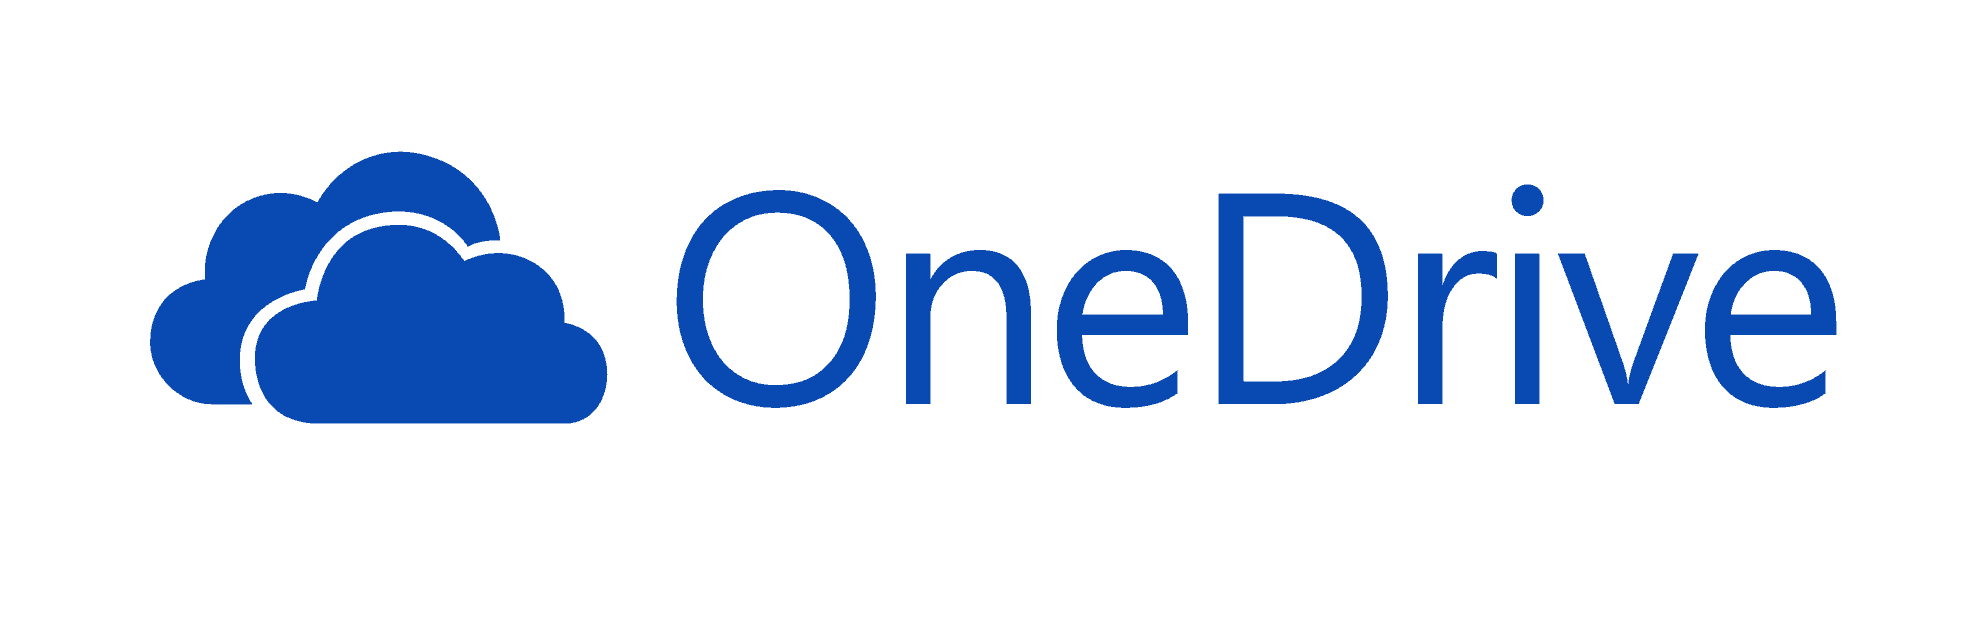 OneDrive to Begin Offering Unlimited Cloud Storage